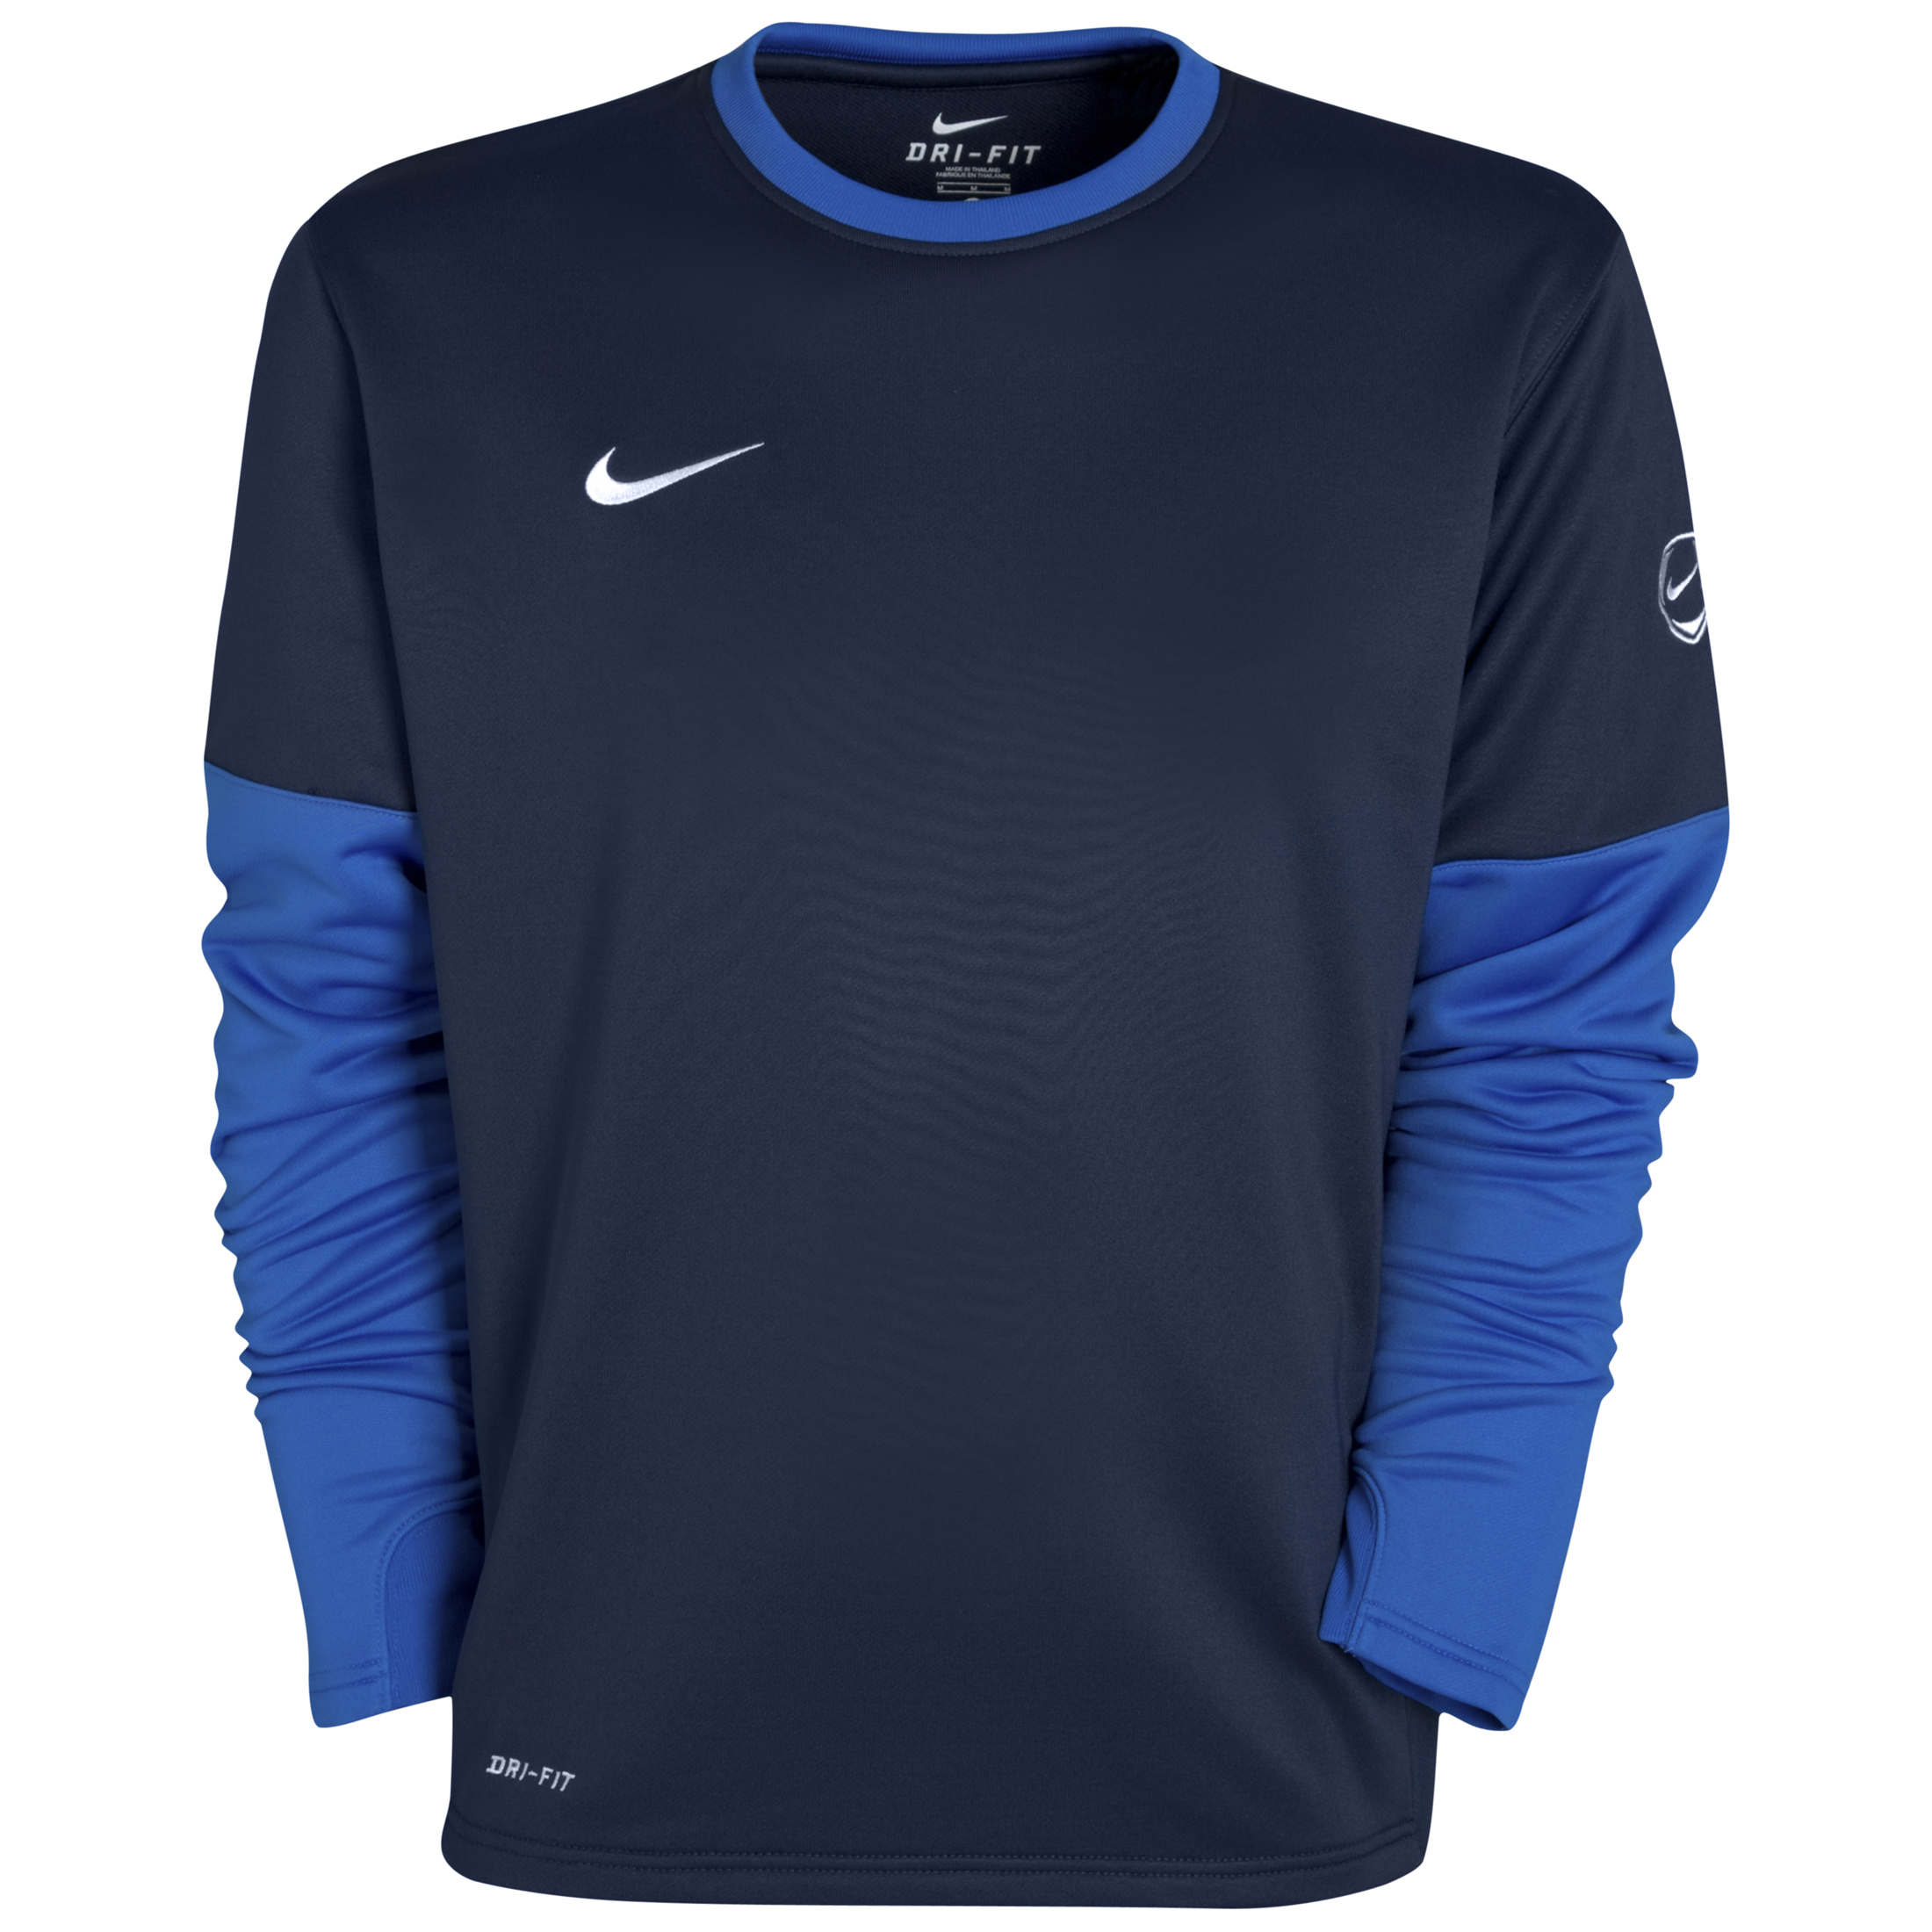 Nike Club Crew Top - Obsidian/Royal Blue/White - Long Sleeved   - Obsidian/Royal Blue/White